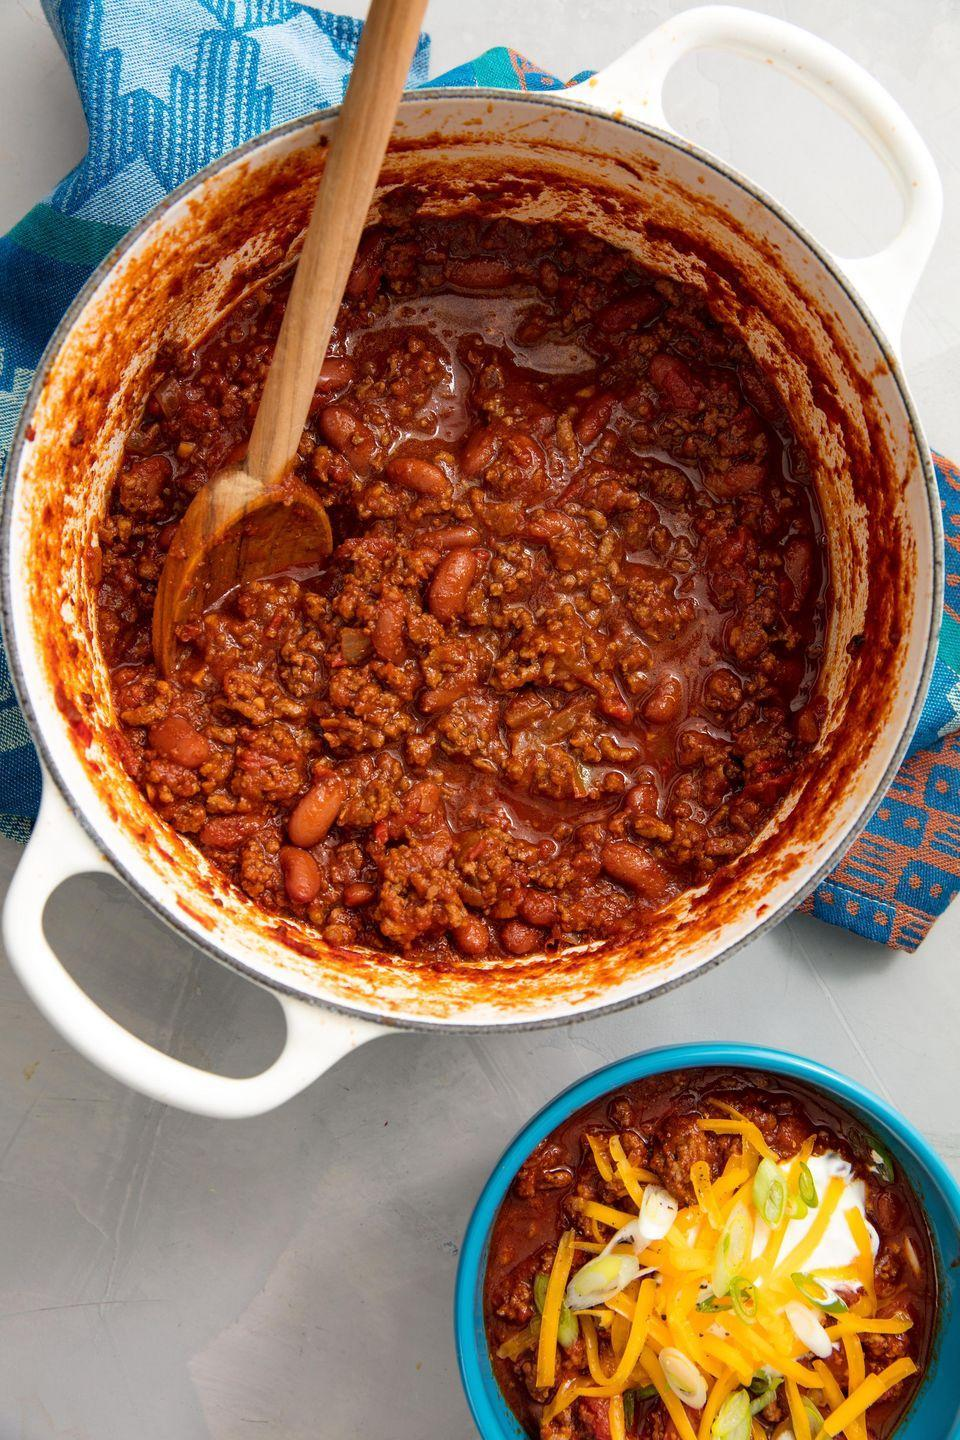 "<p>You can't beat a classic.</p><p>Get the recipe from <a href=""https://www.delish.com/cooking/recipe-ideas/recipes/a58253/best-homemade-chili-recipe/"" rel=""nofollow noopener"" target=""_blank"" data-ylk=""slk:Delish"" class=""link rapid-noclick-resp"">Delish</a>.</p>"